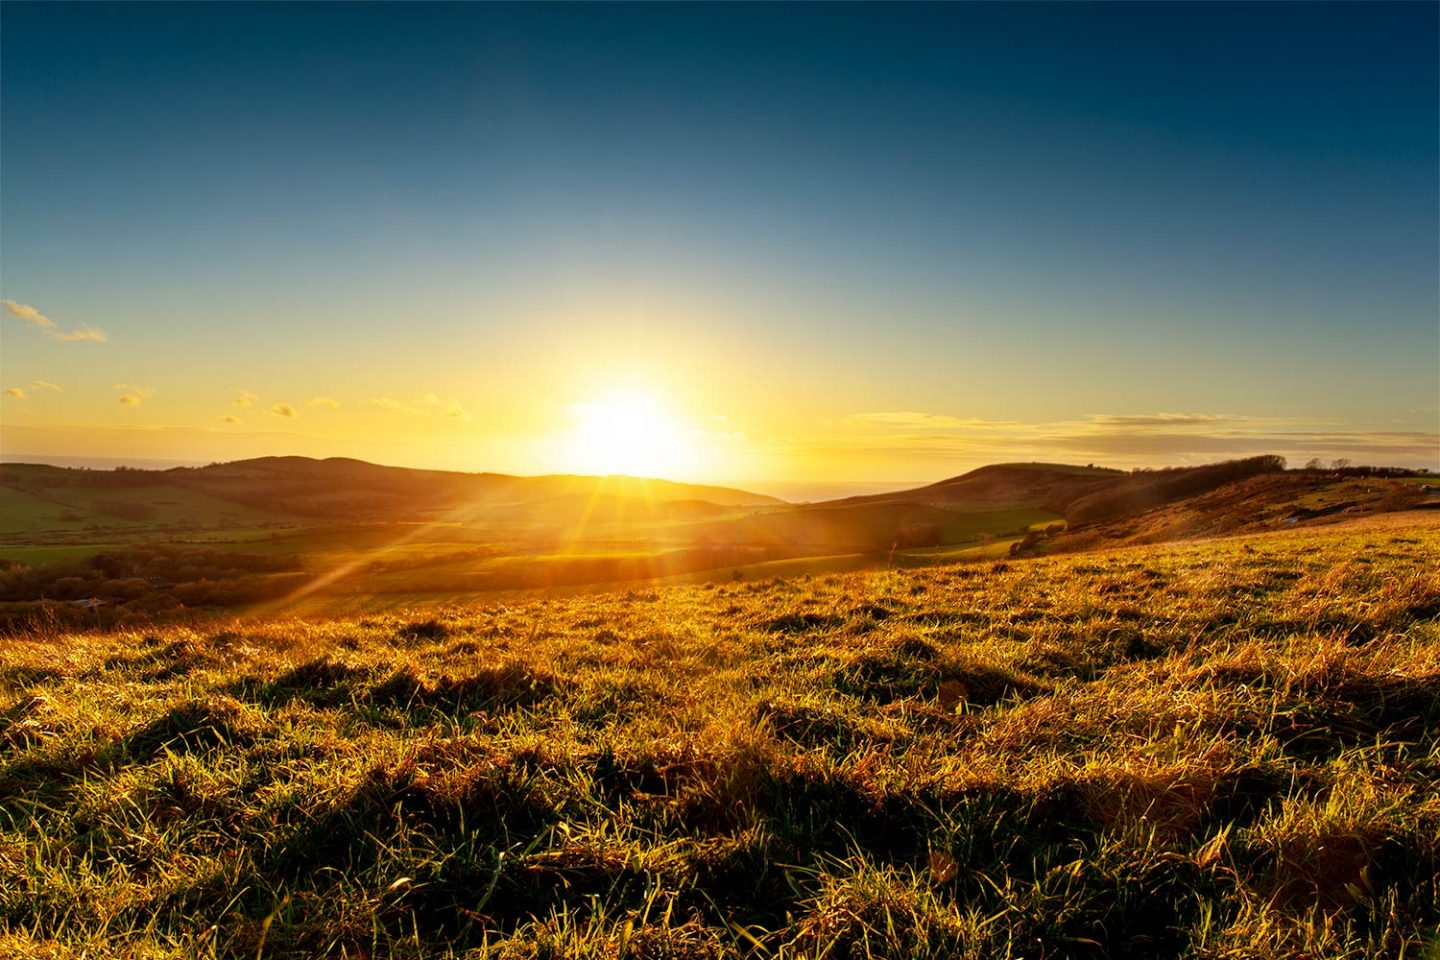 A perfect sunset looking straight towards the setting sun with a large grassy hill that leads towards the sea.